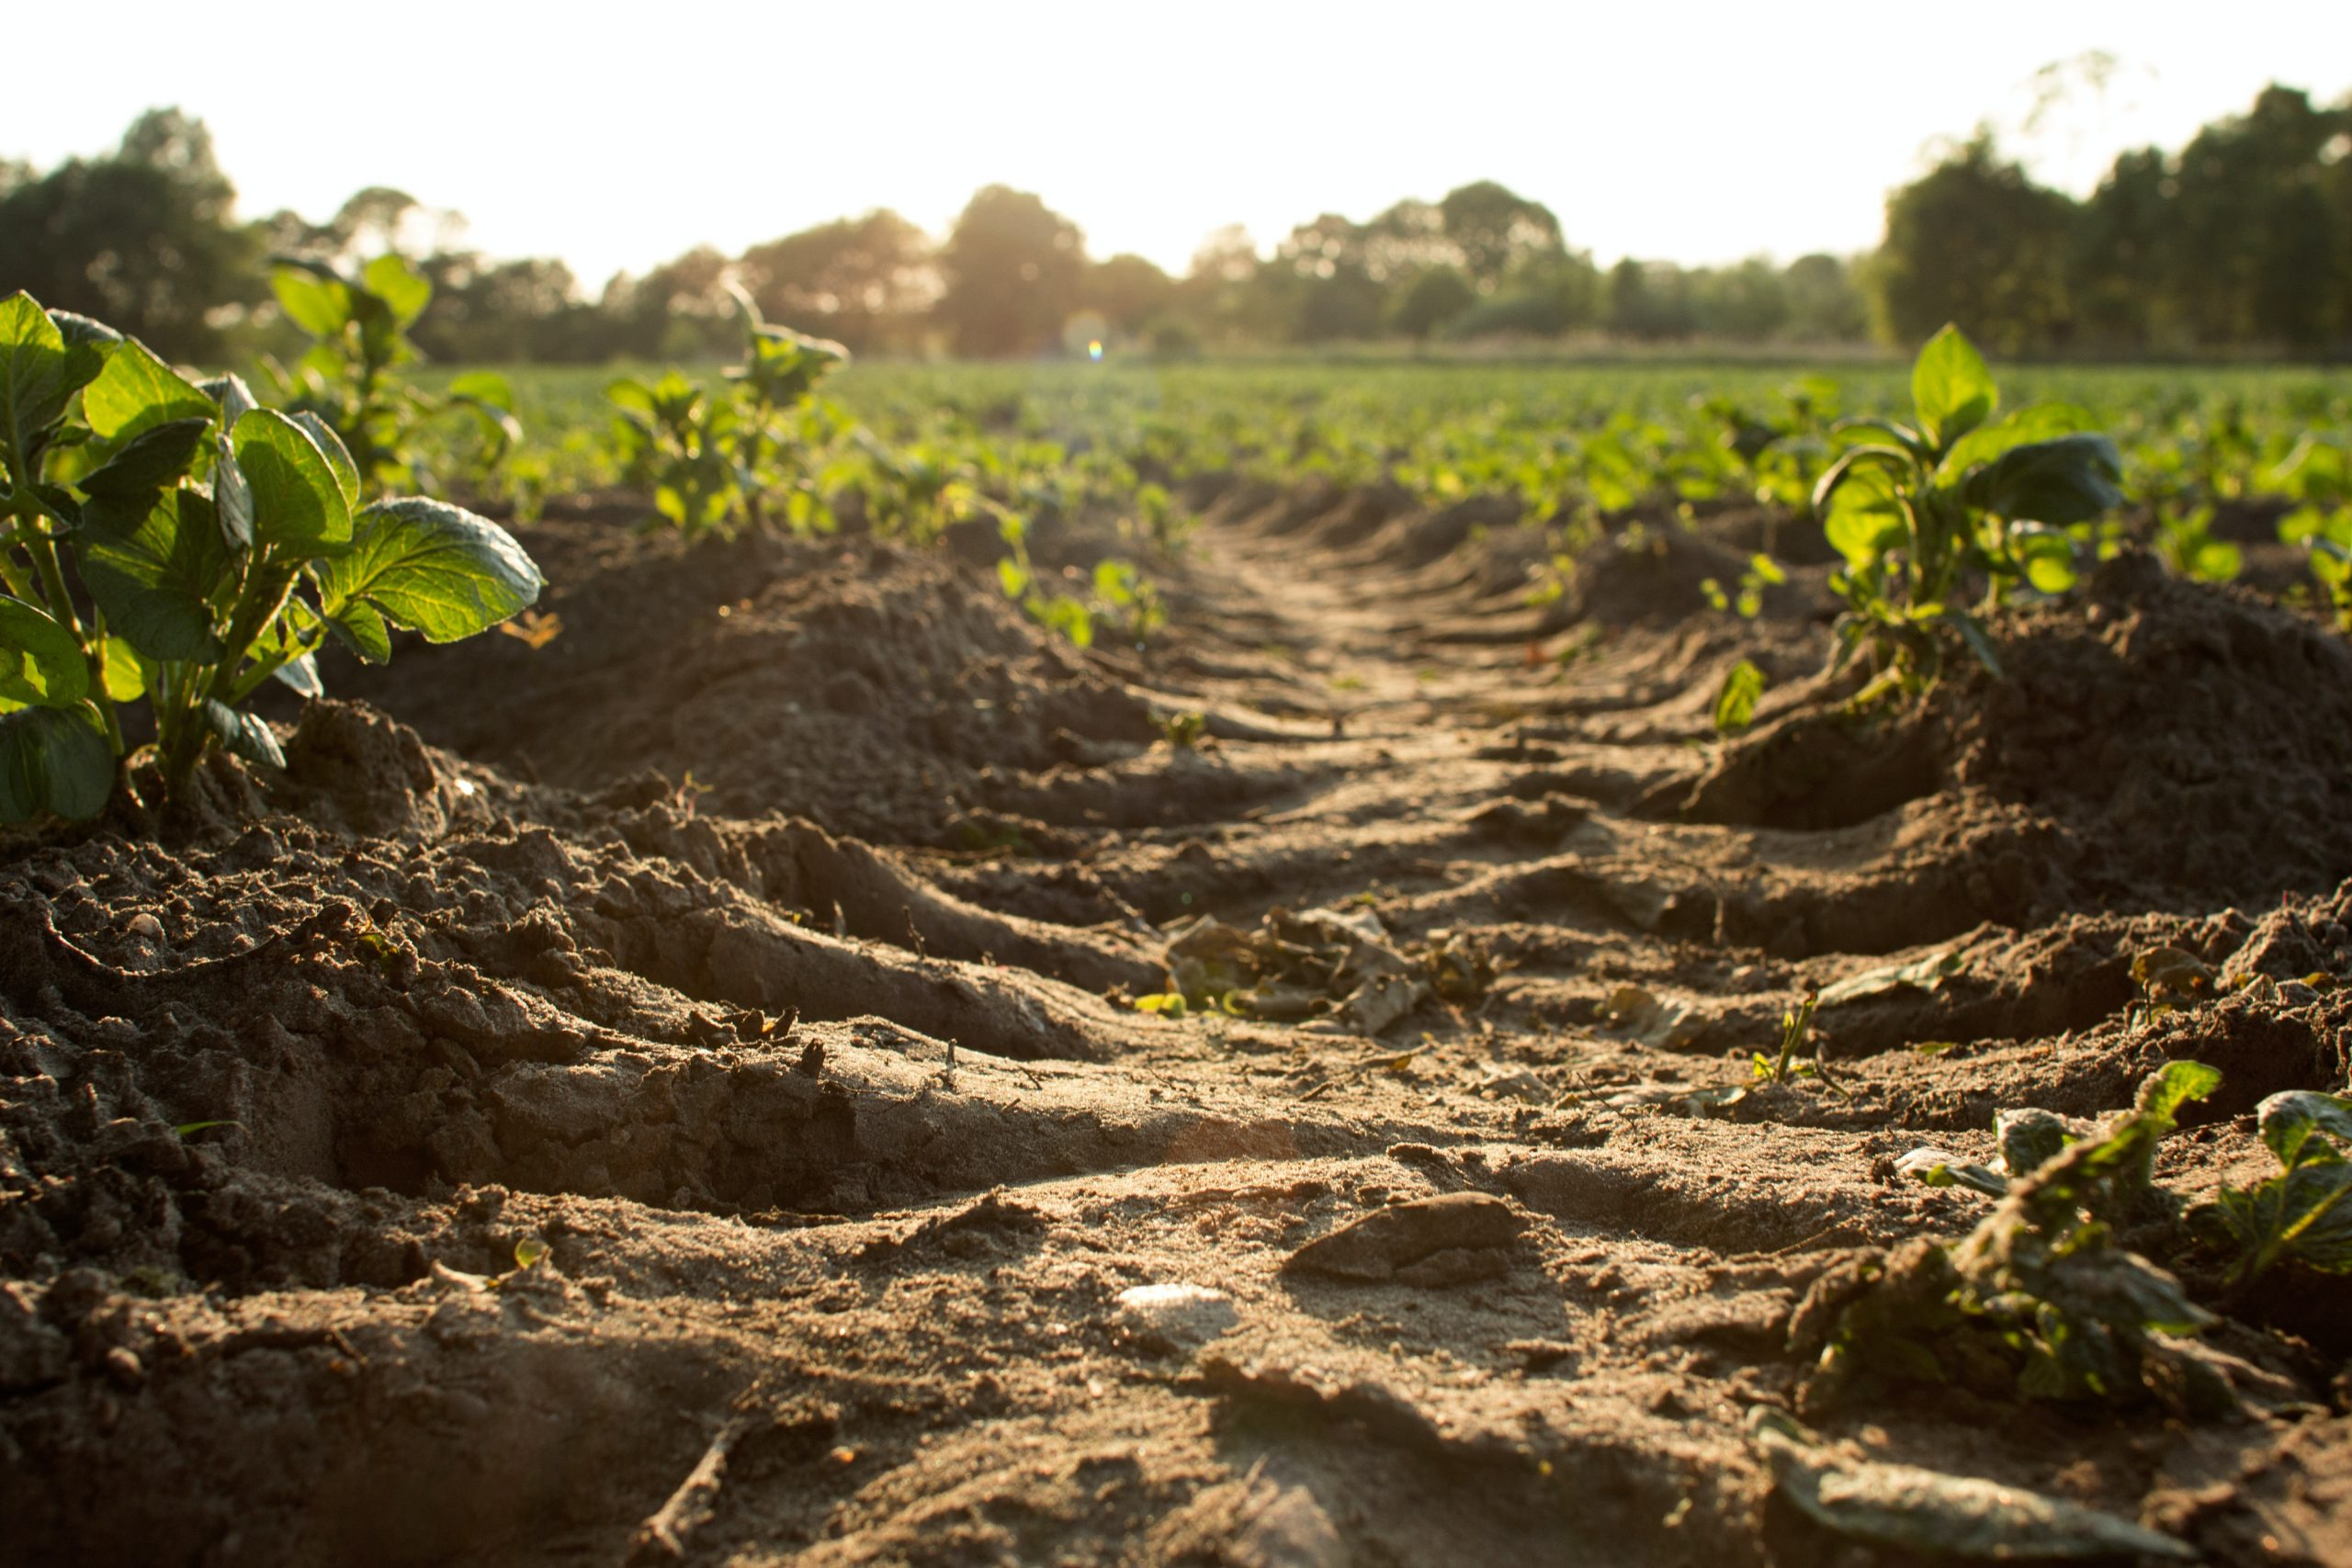 074: Soil Capital's Andrew Voysey: Finance, Farming, and the vision of Regenerative Agriculture